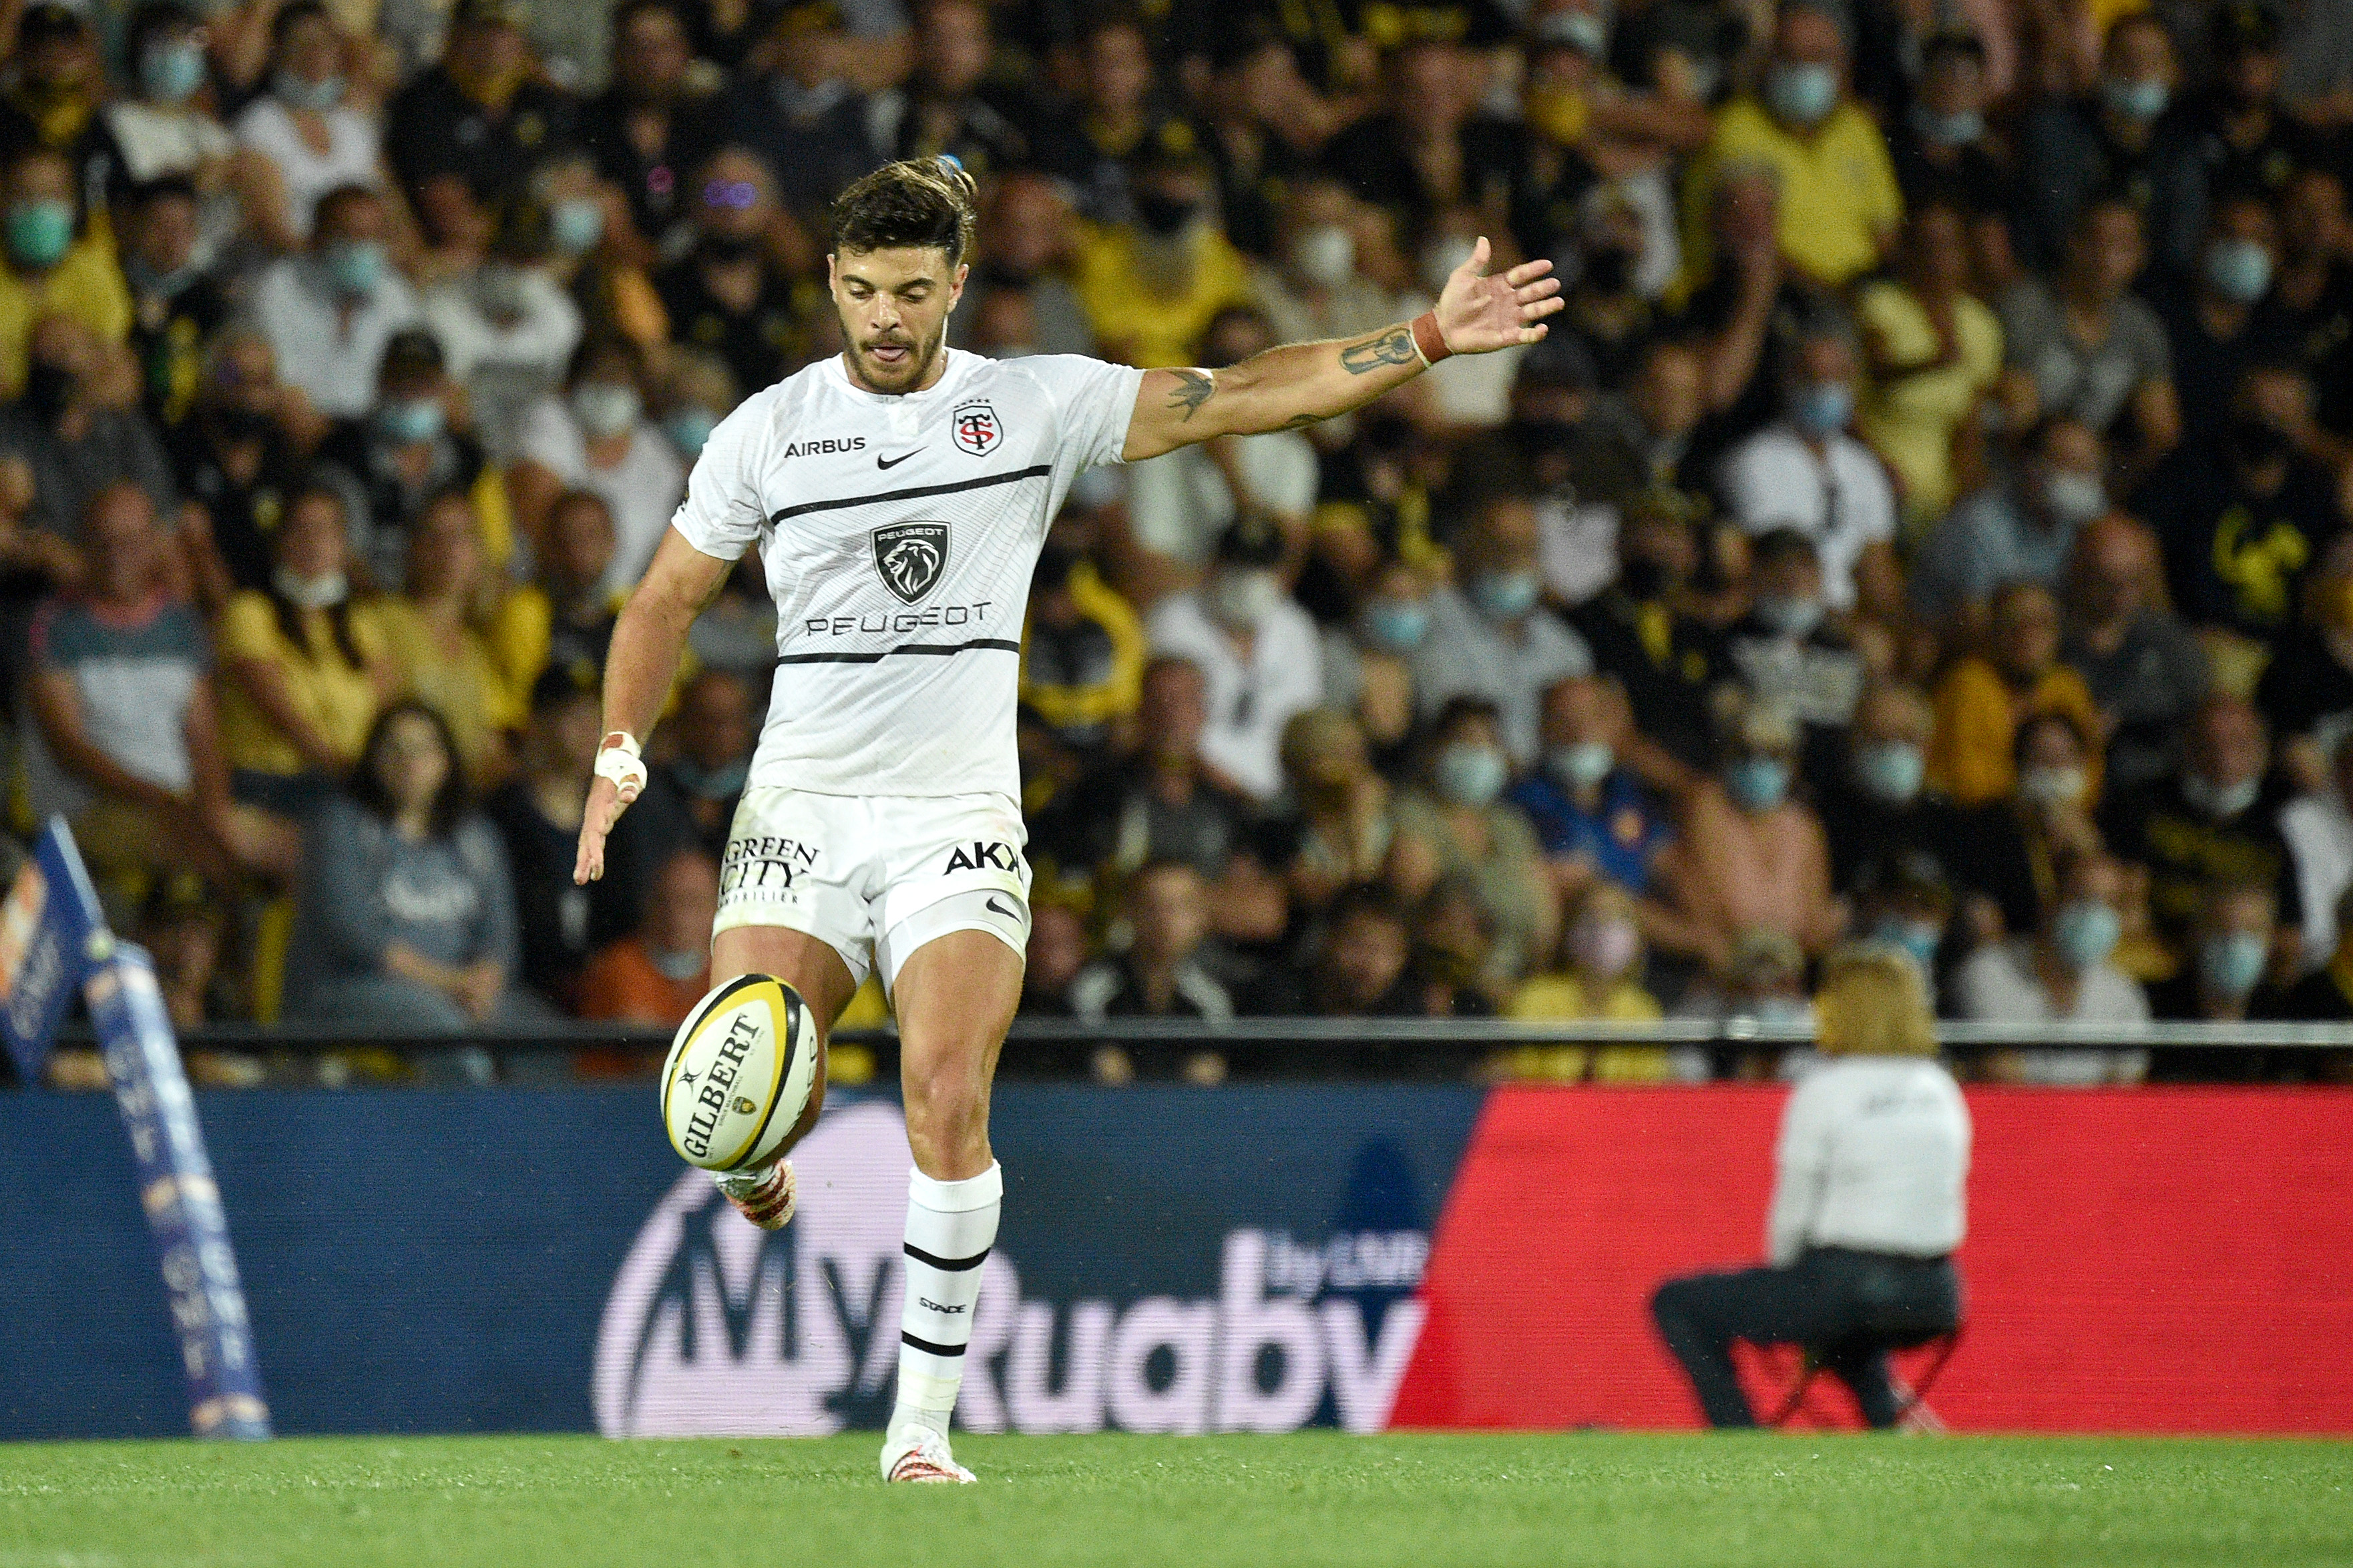 Romain Ntamack: Ten things you should know about the France fly-half